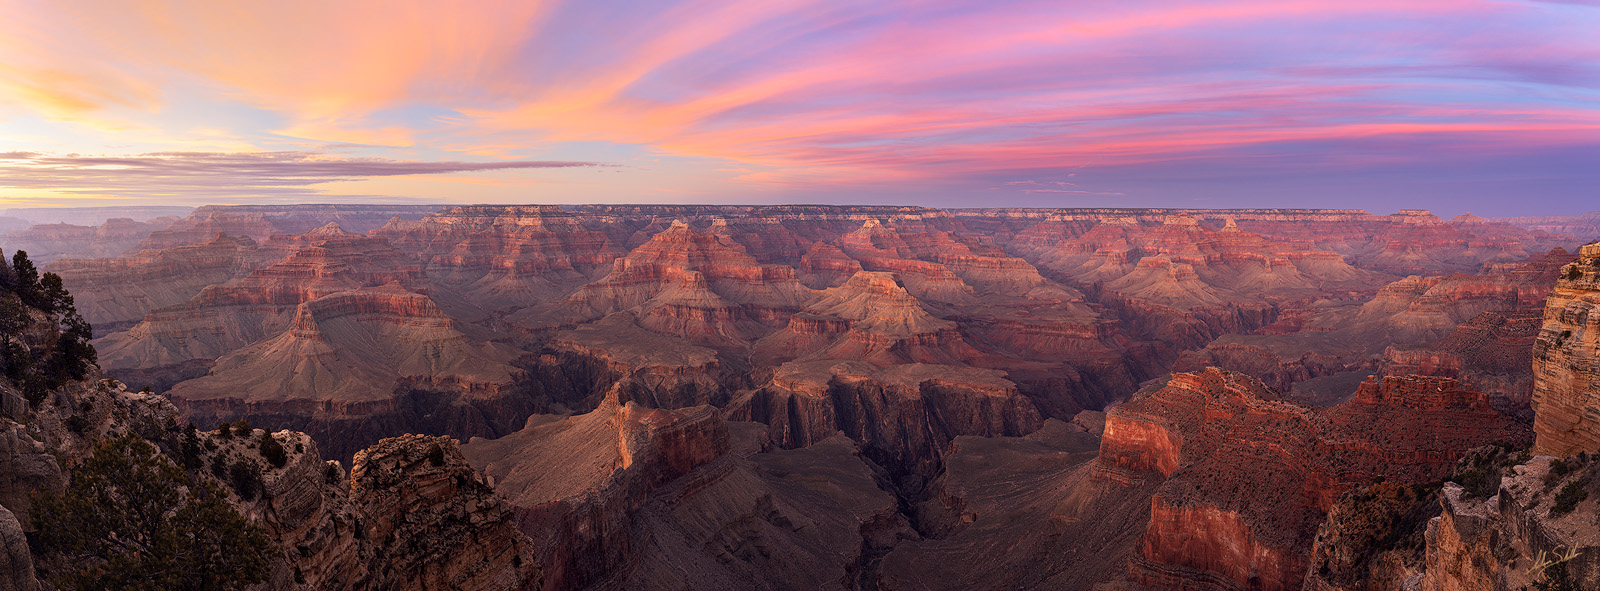 A panoramic sunset over the Grand Canyon. From Hopi Point on the south rim of Grand Canyon National Park. © Adam Schallau, All...